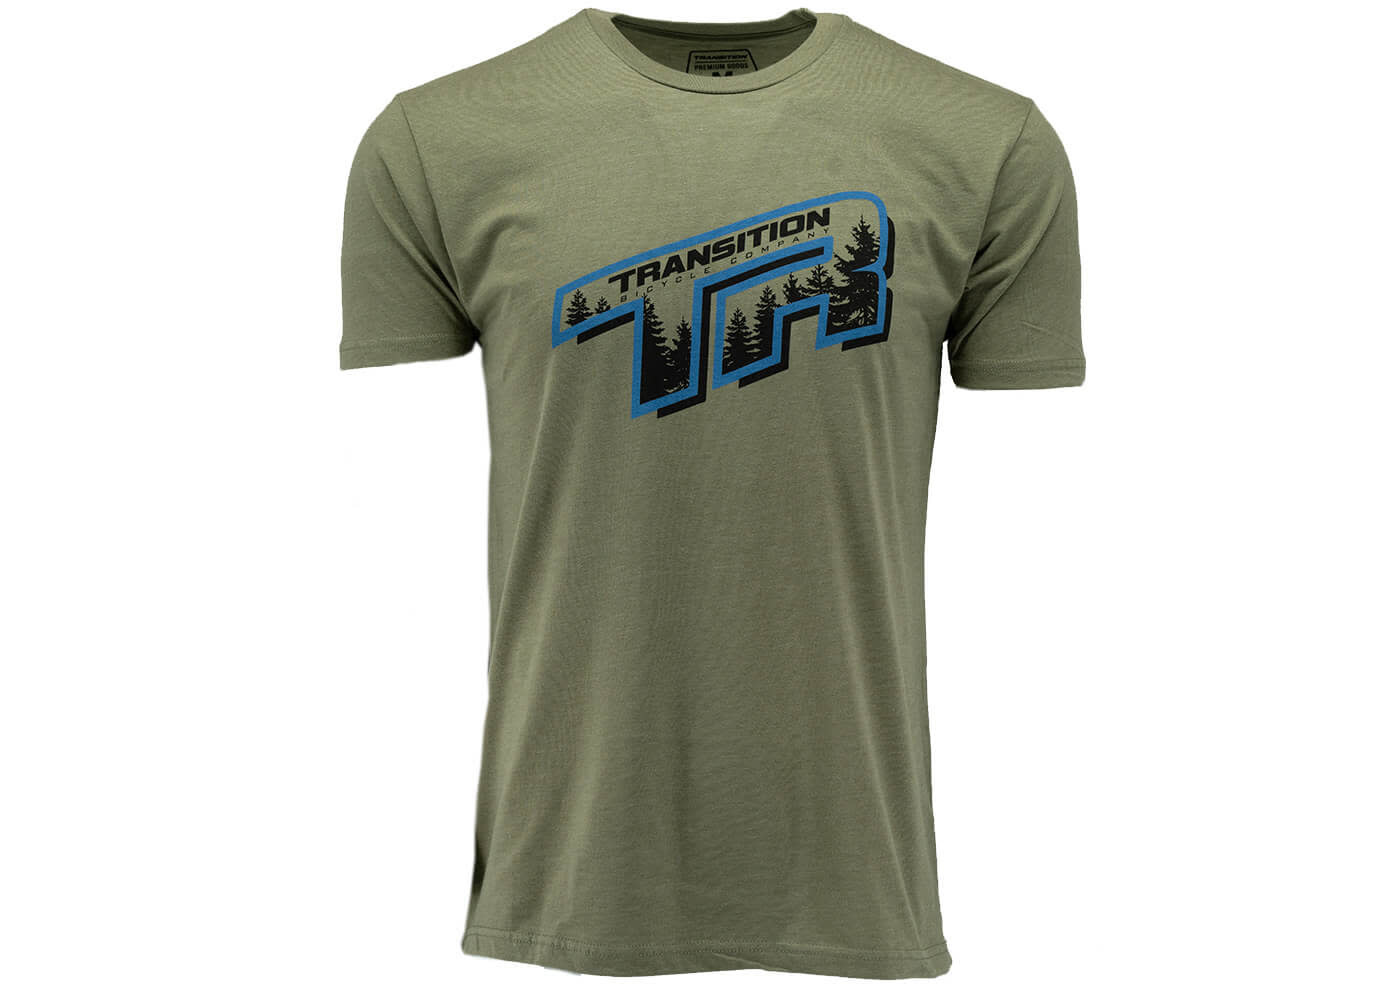 Transition T-Shirt: TR Trees (Olive Green, XX-Large)